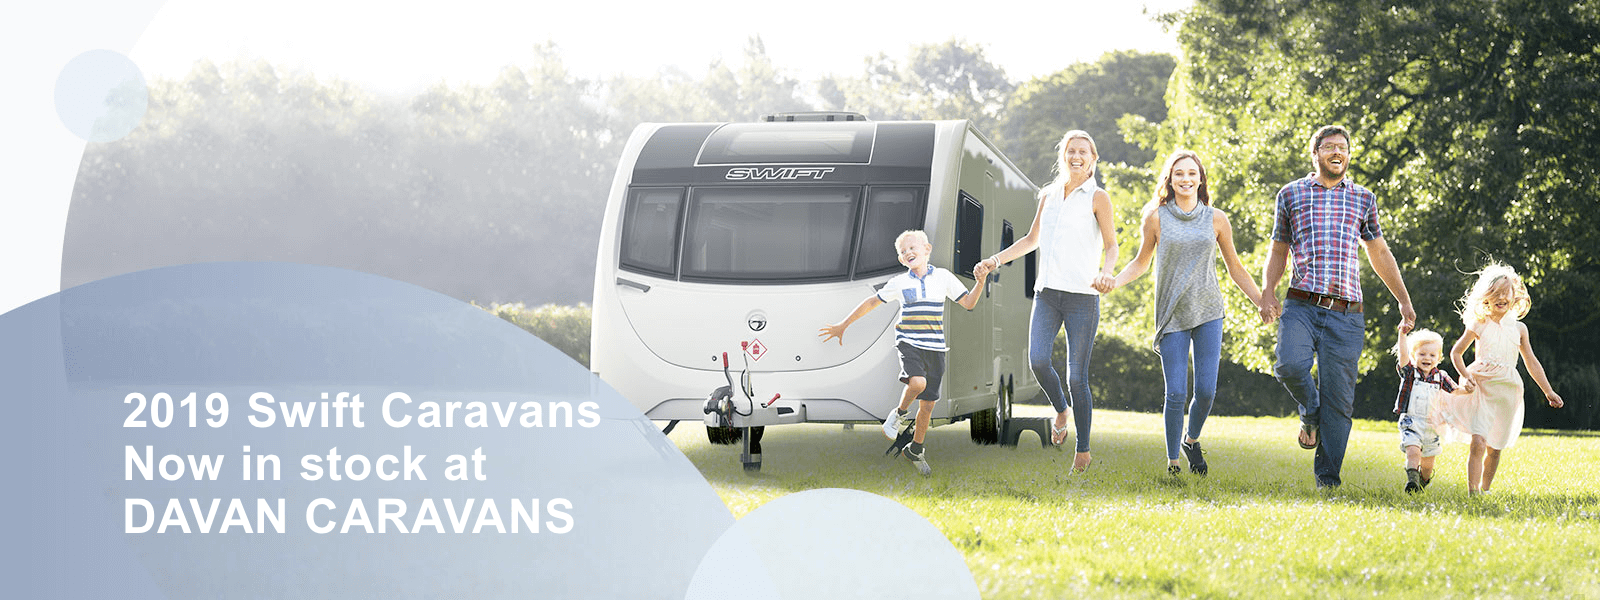 2019 Swift Caravans for sale